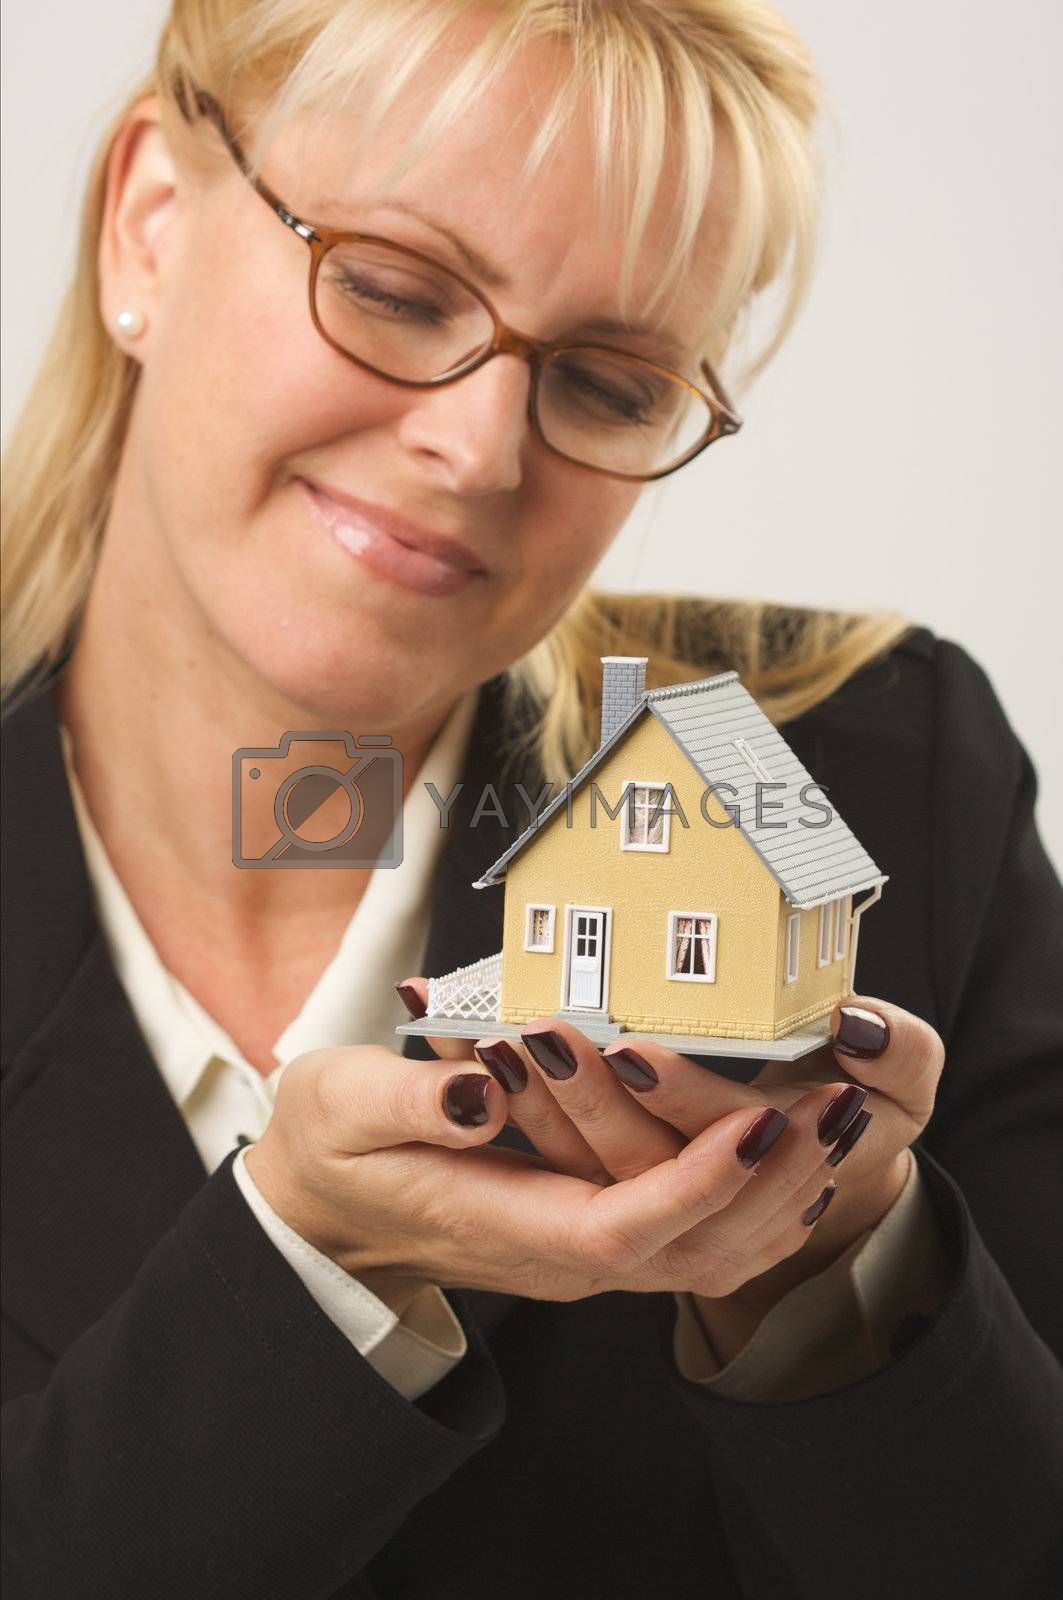 Female holding and looking at small house.